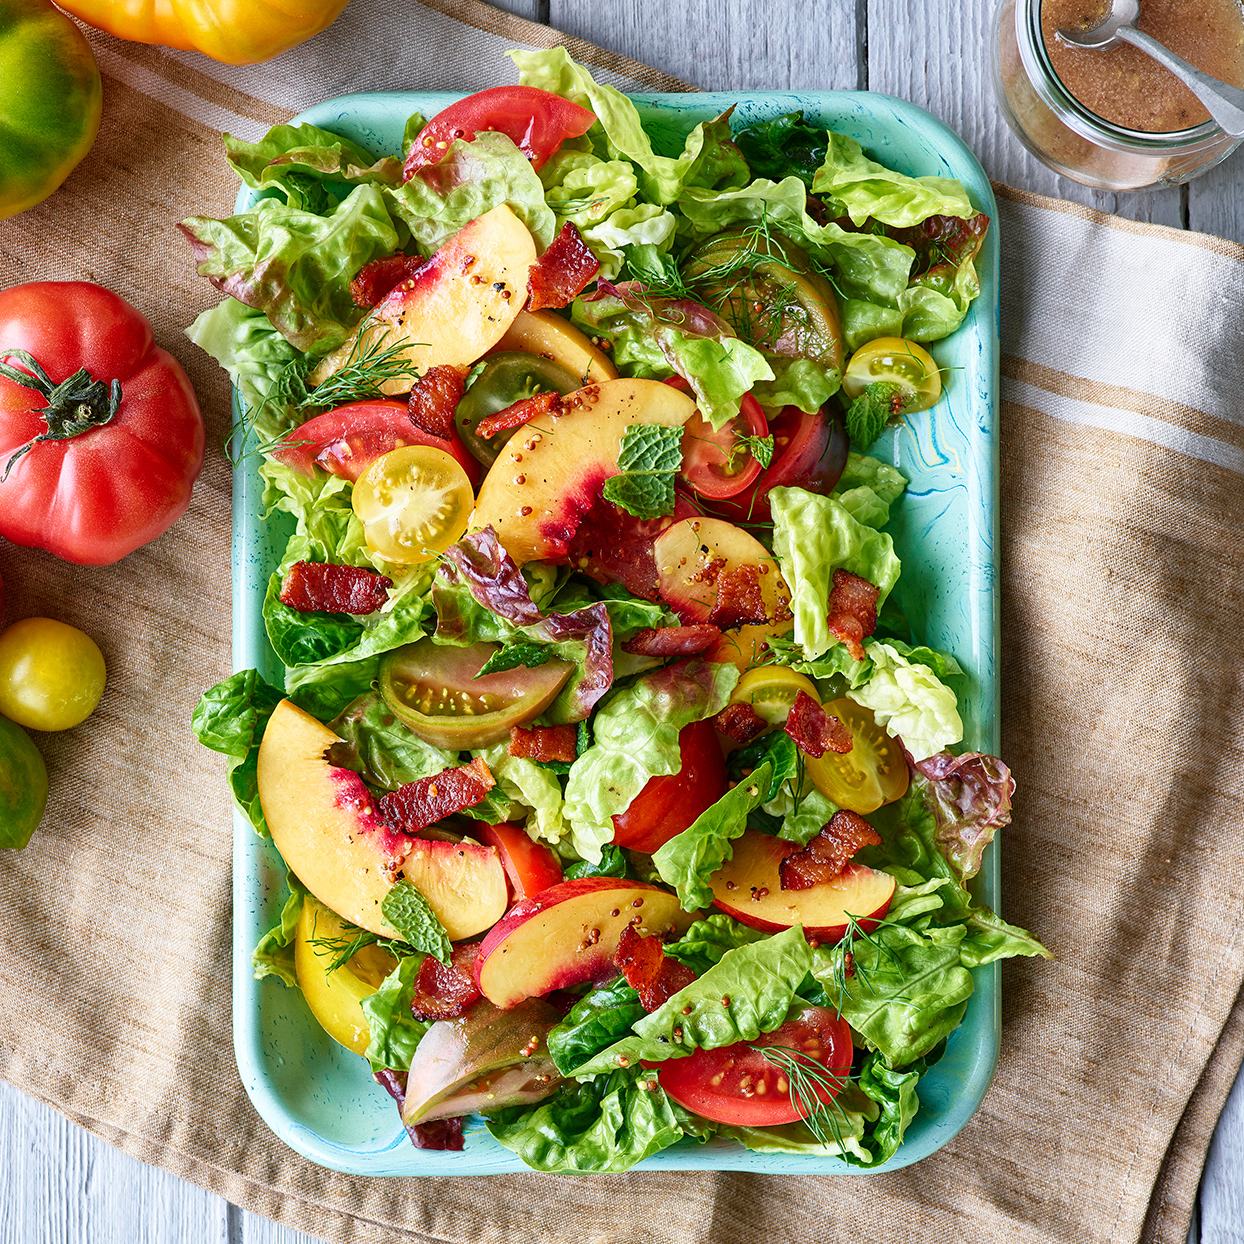 peach salad on plate with tomatoes